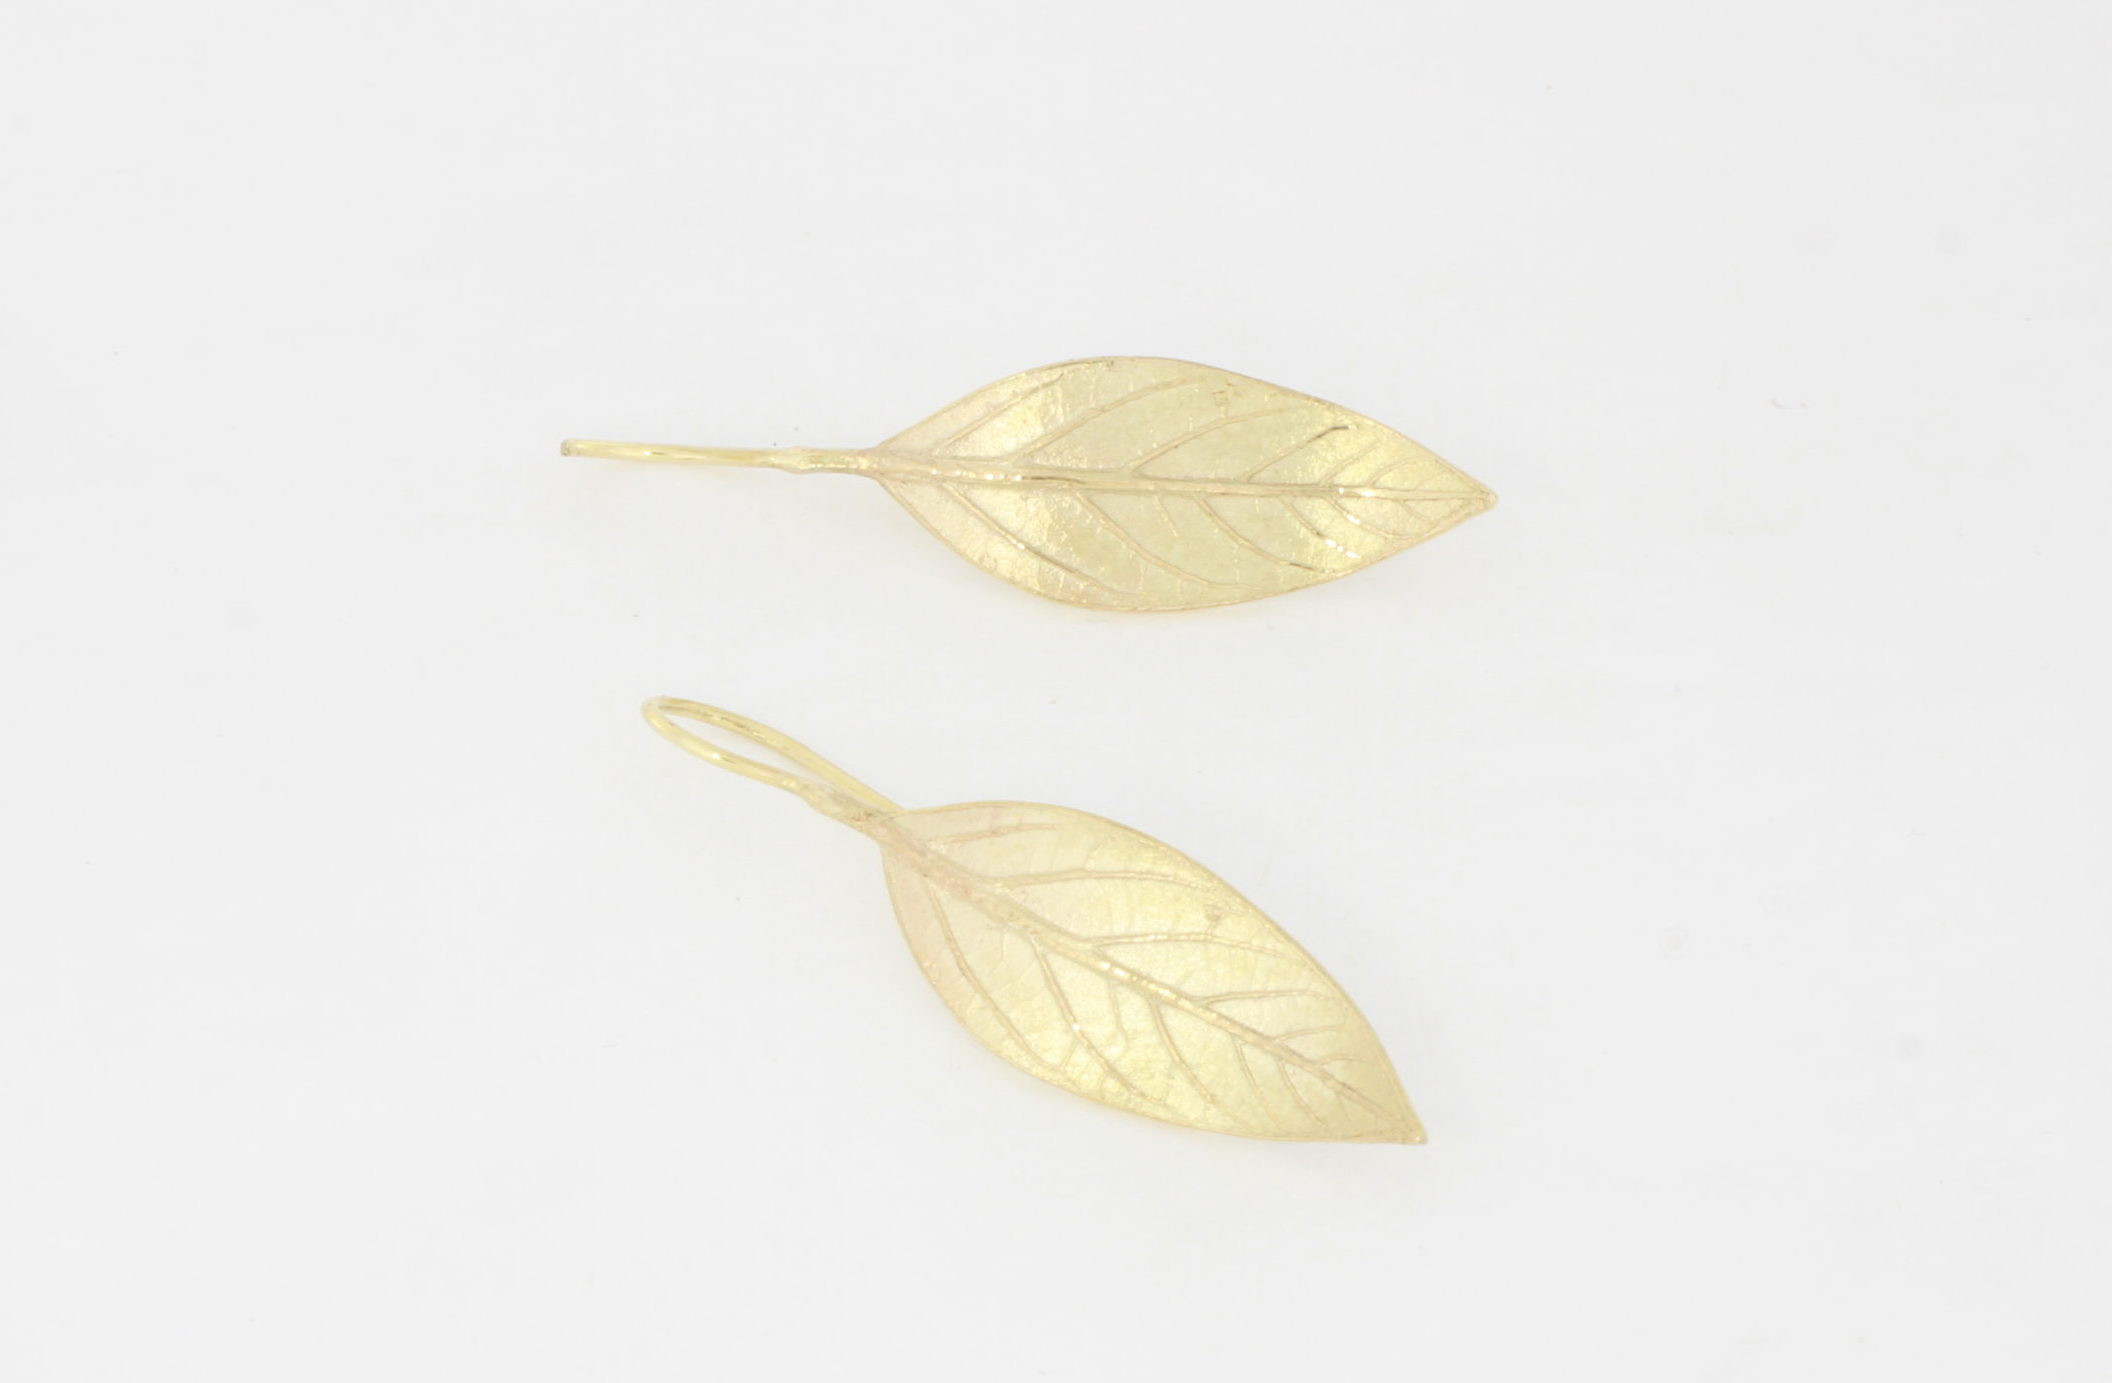 Payet avocado leaf earrings